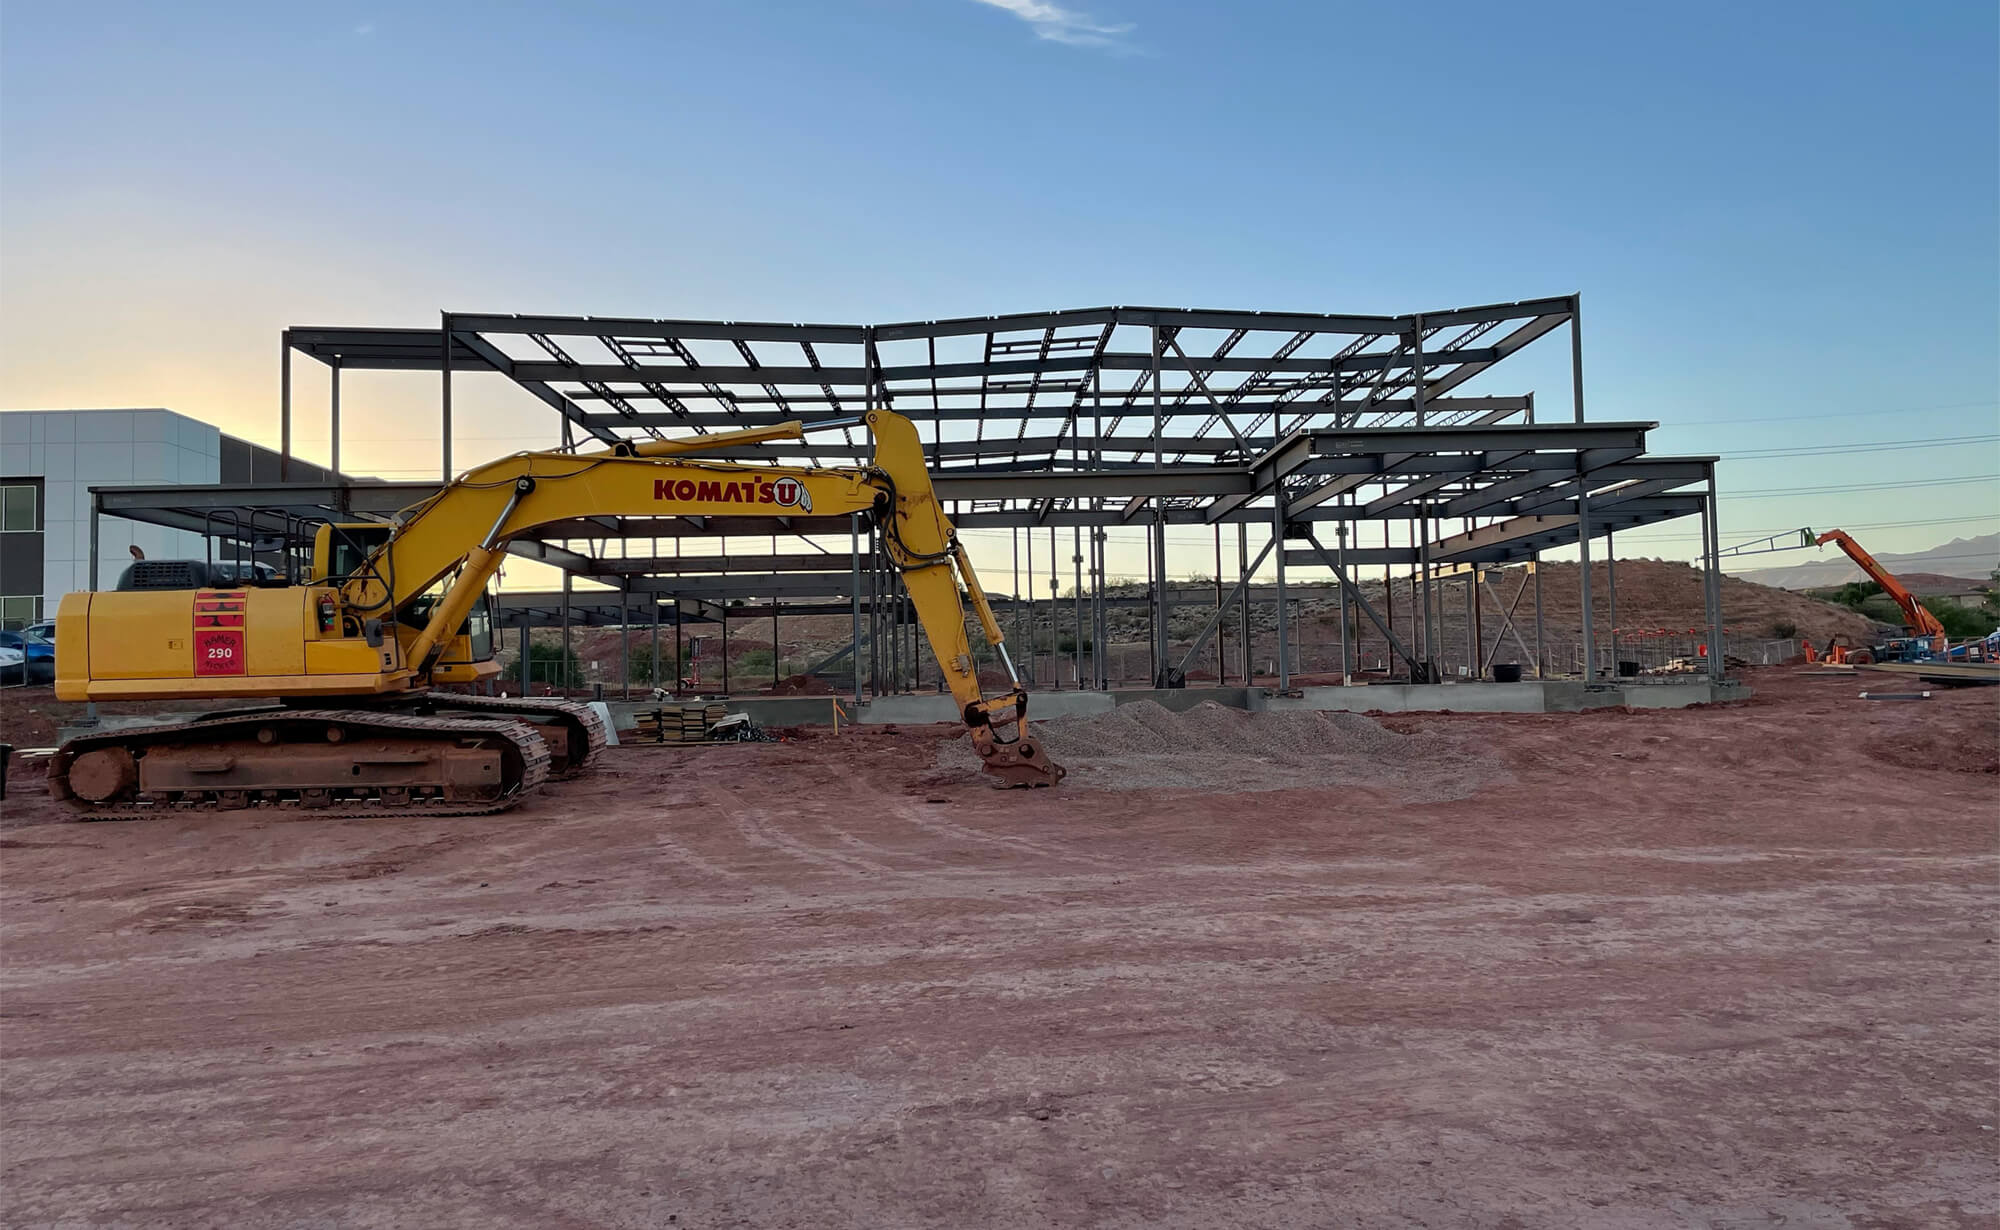 Riverside Clinic building starting to take shape as steel frame is being constructed